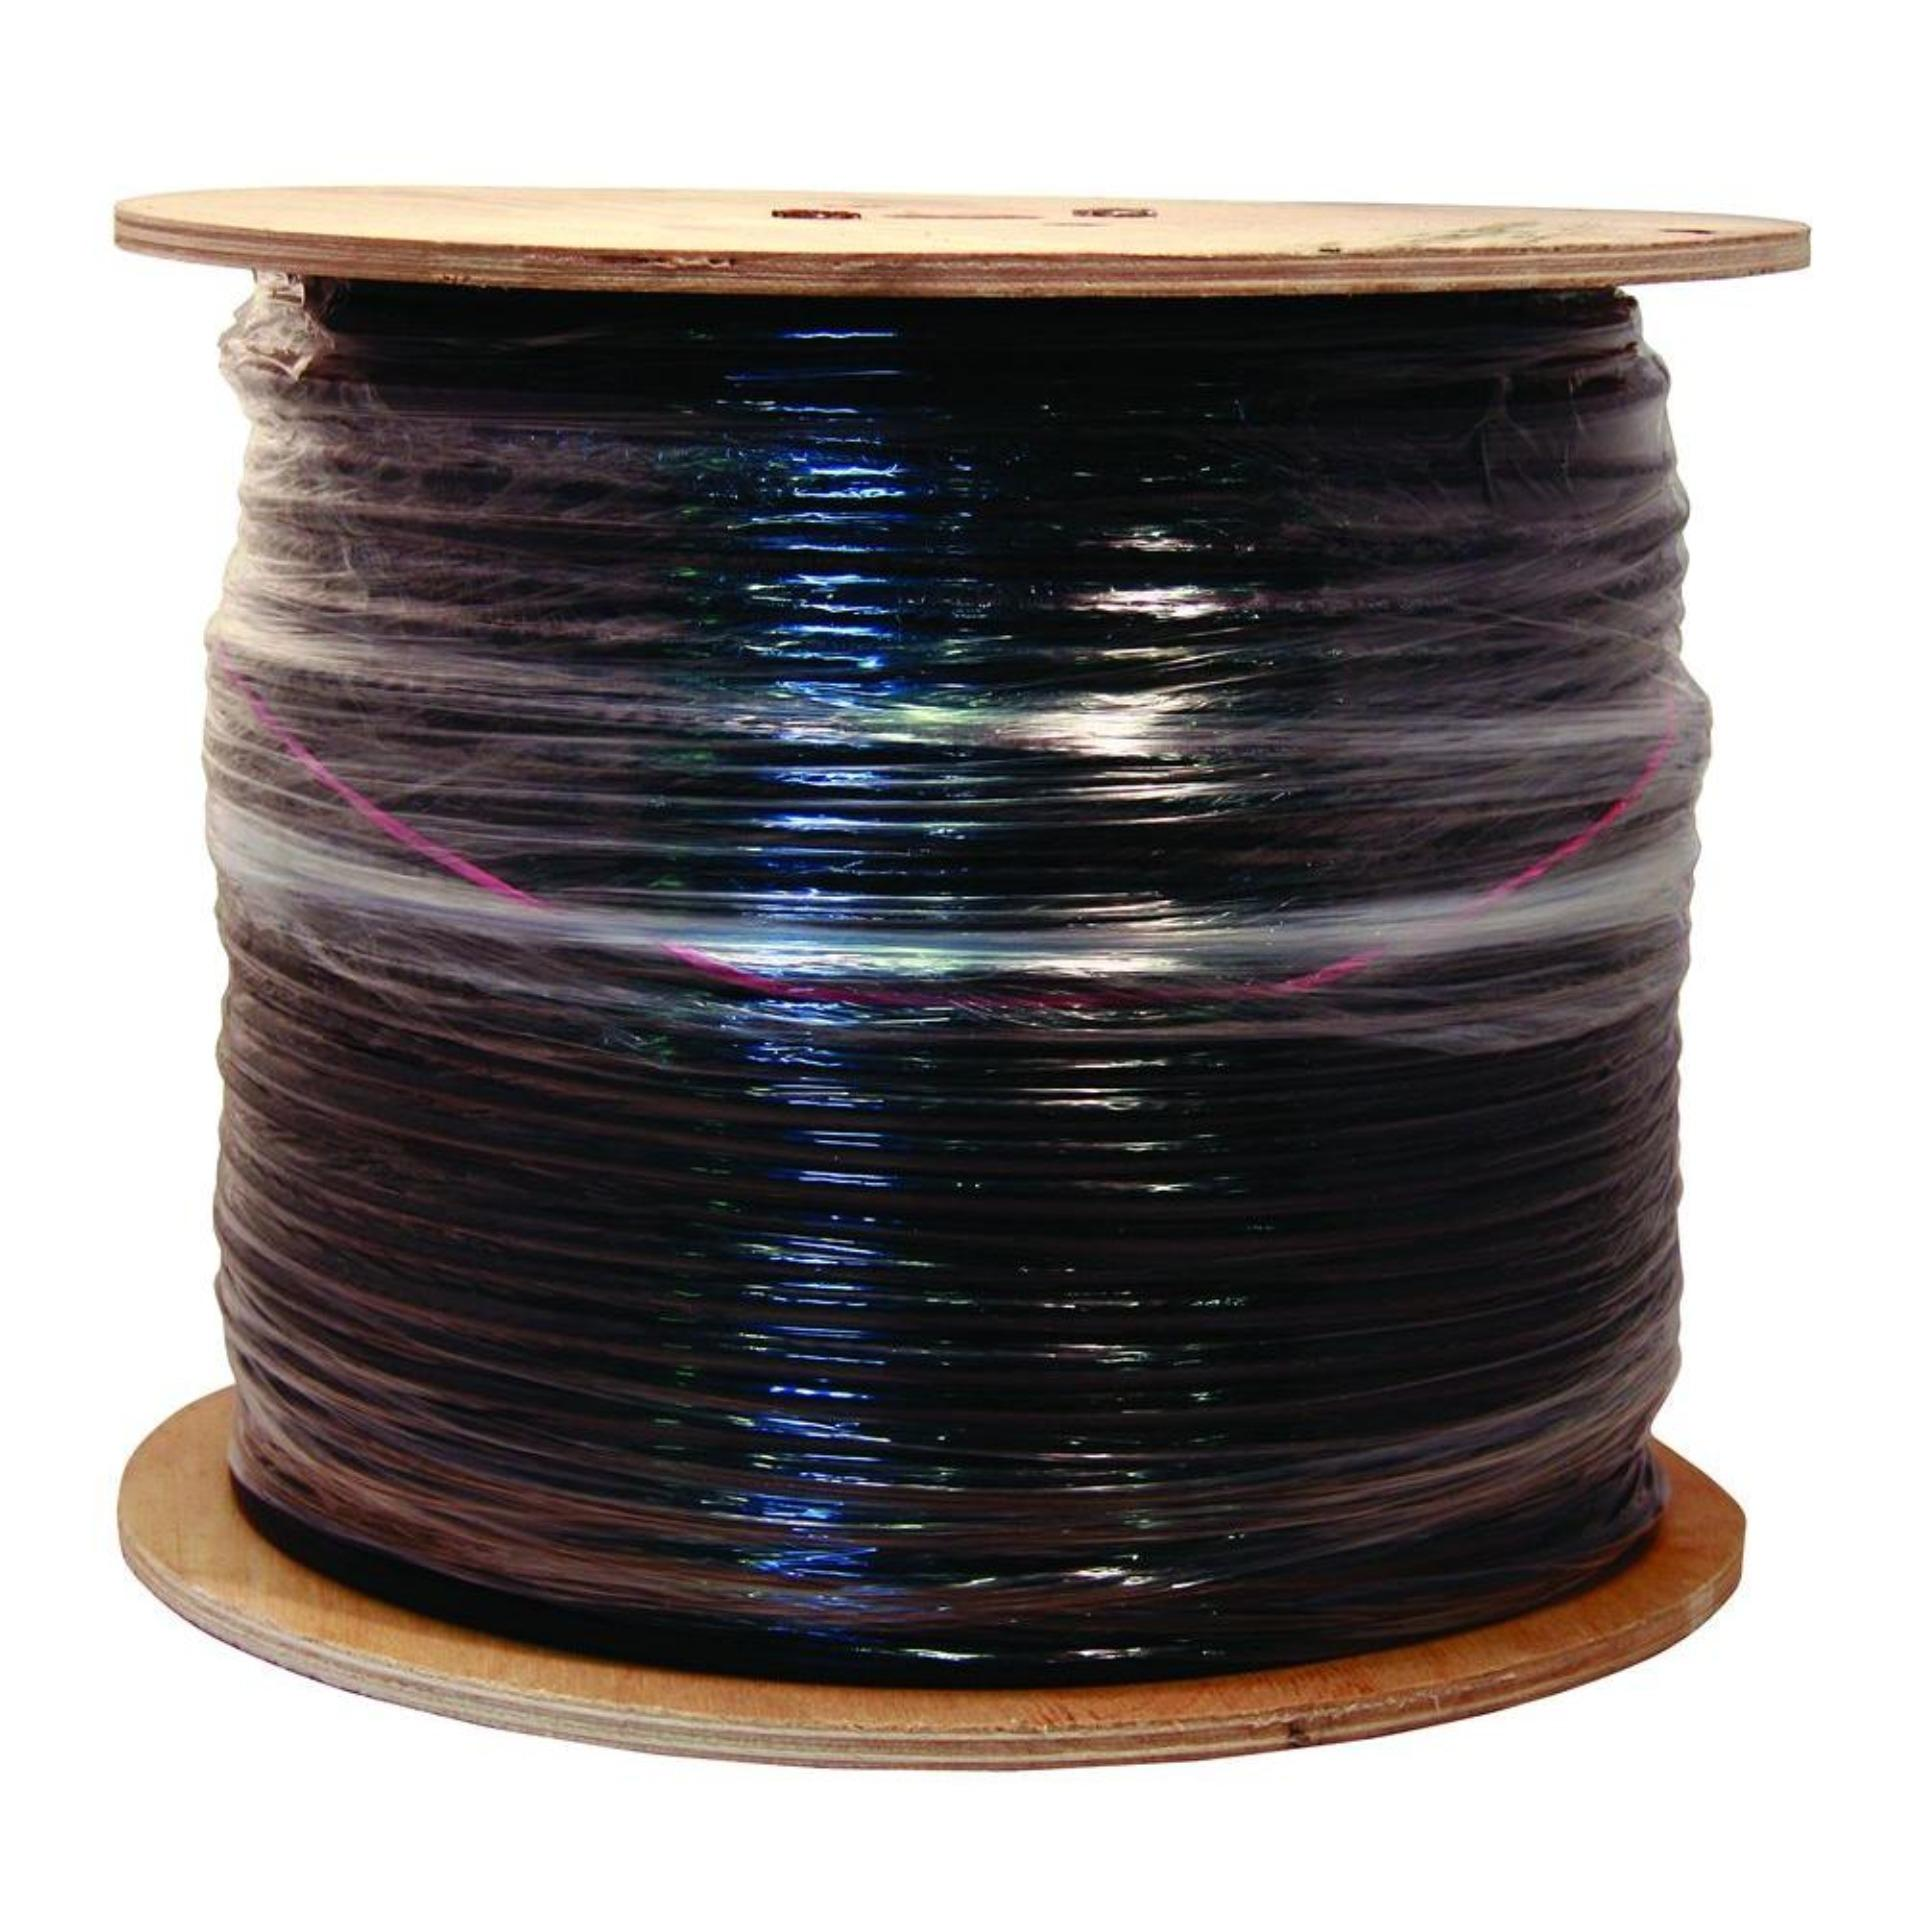 Philflex Philippines Price List Cables Wires Cords Copper Conductor Electric Wire China Rg06 R 300 Rg6 Coaxial Cable 300m